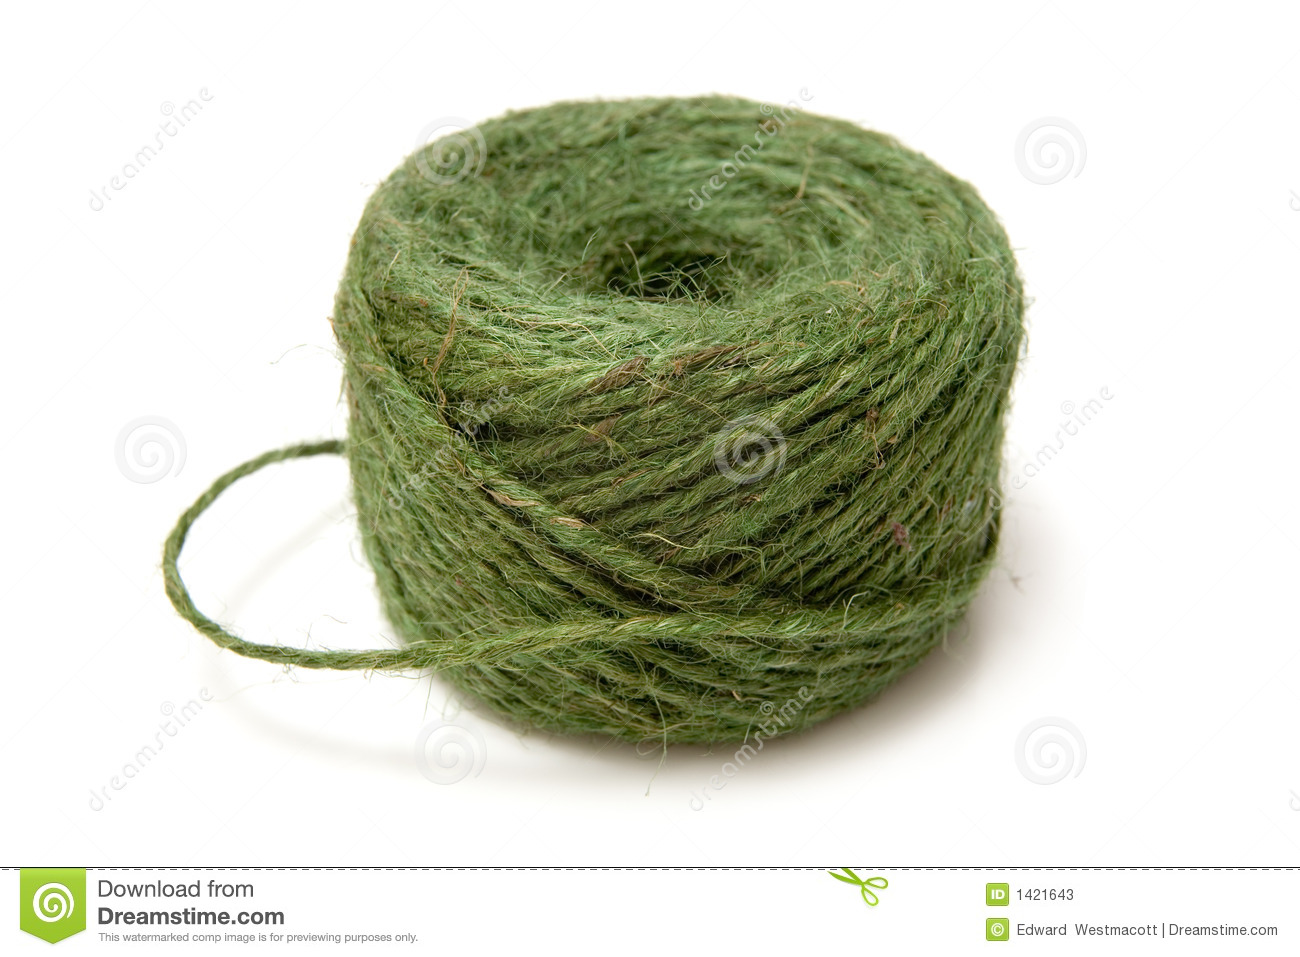 Delicieux Ball Of Green Garden Twine Or String, Isolated On White Background.